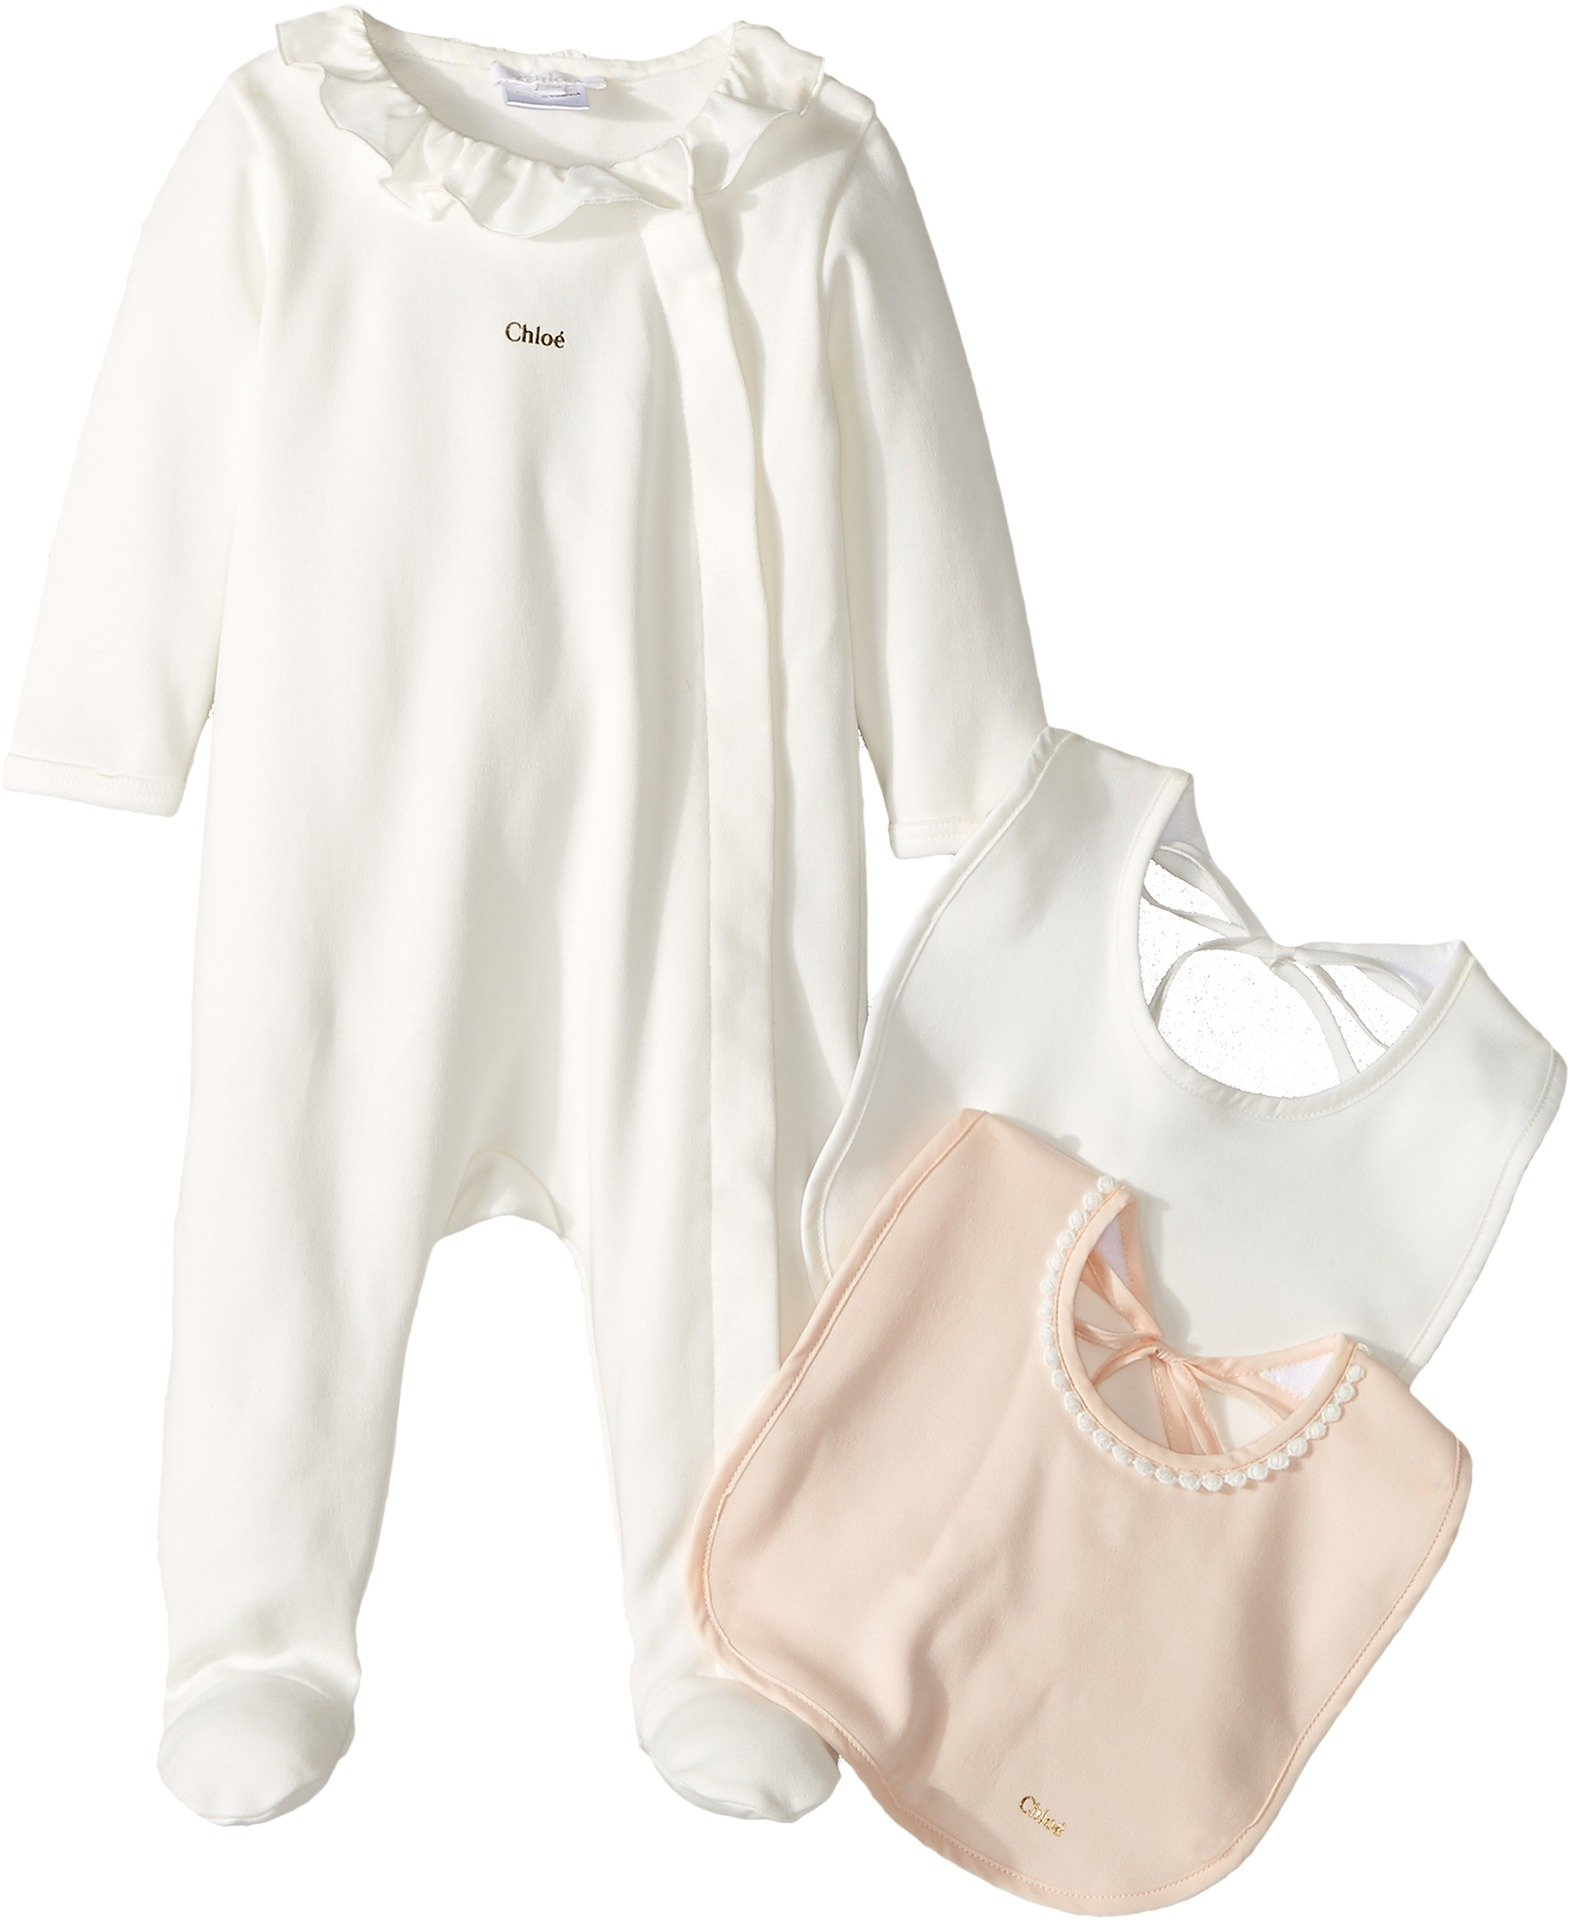 Chloe Kids Baby Girl's Gift Box - Essential Long Sleeve Bodysuit w/ 2 Bibs (Infant) Off-White Jumpsuit